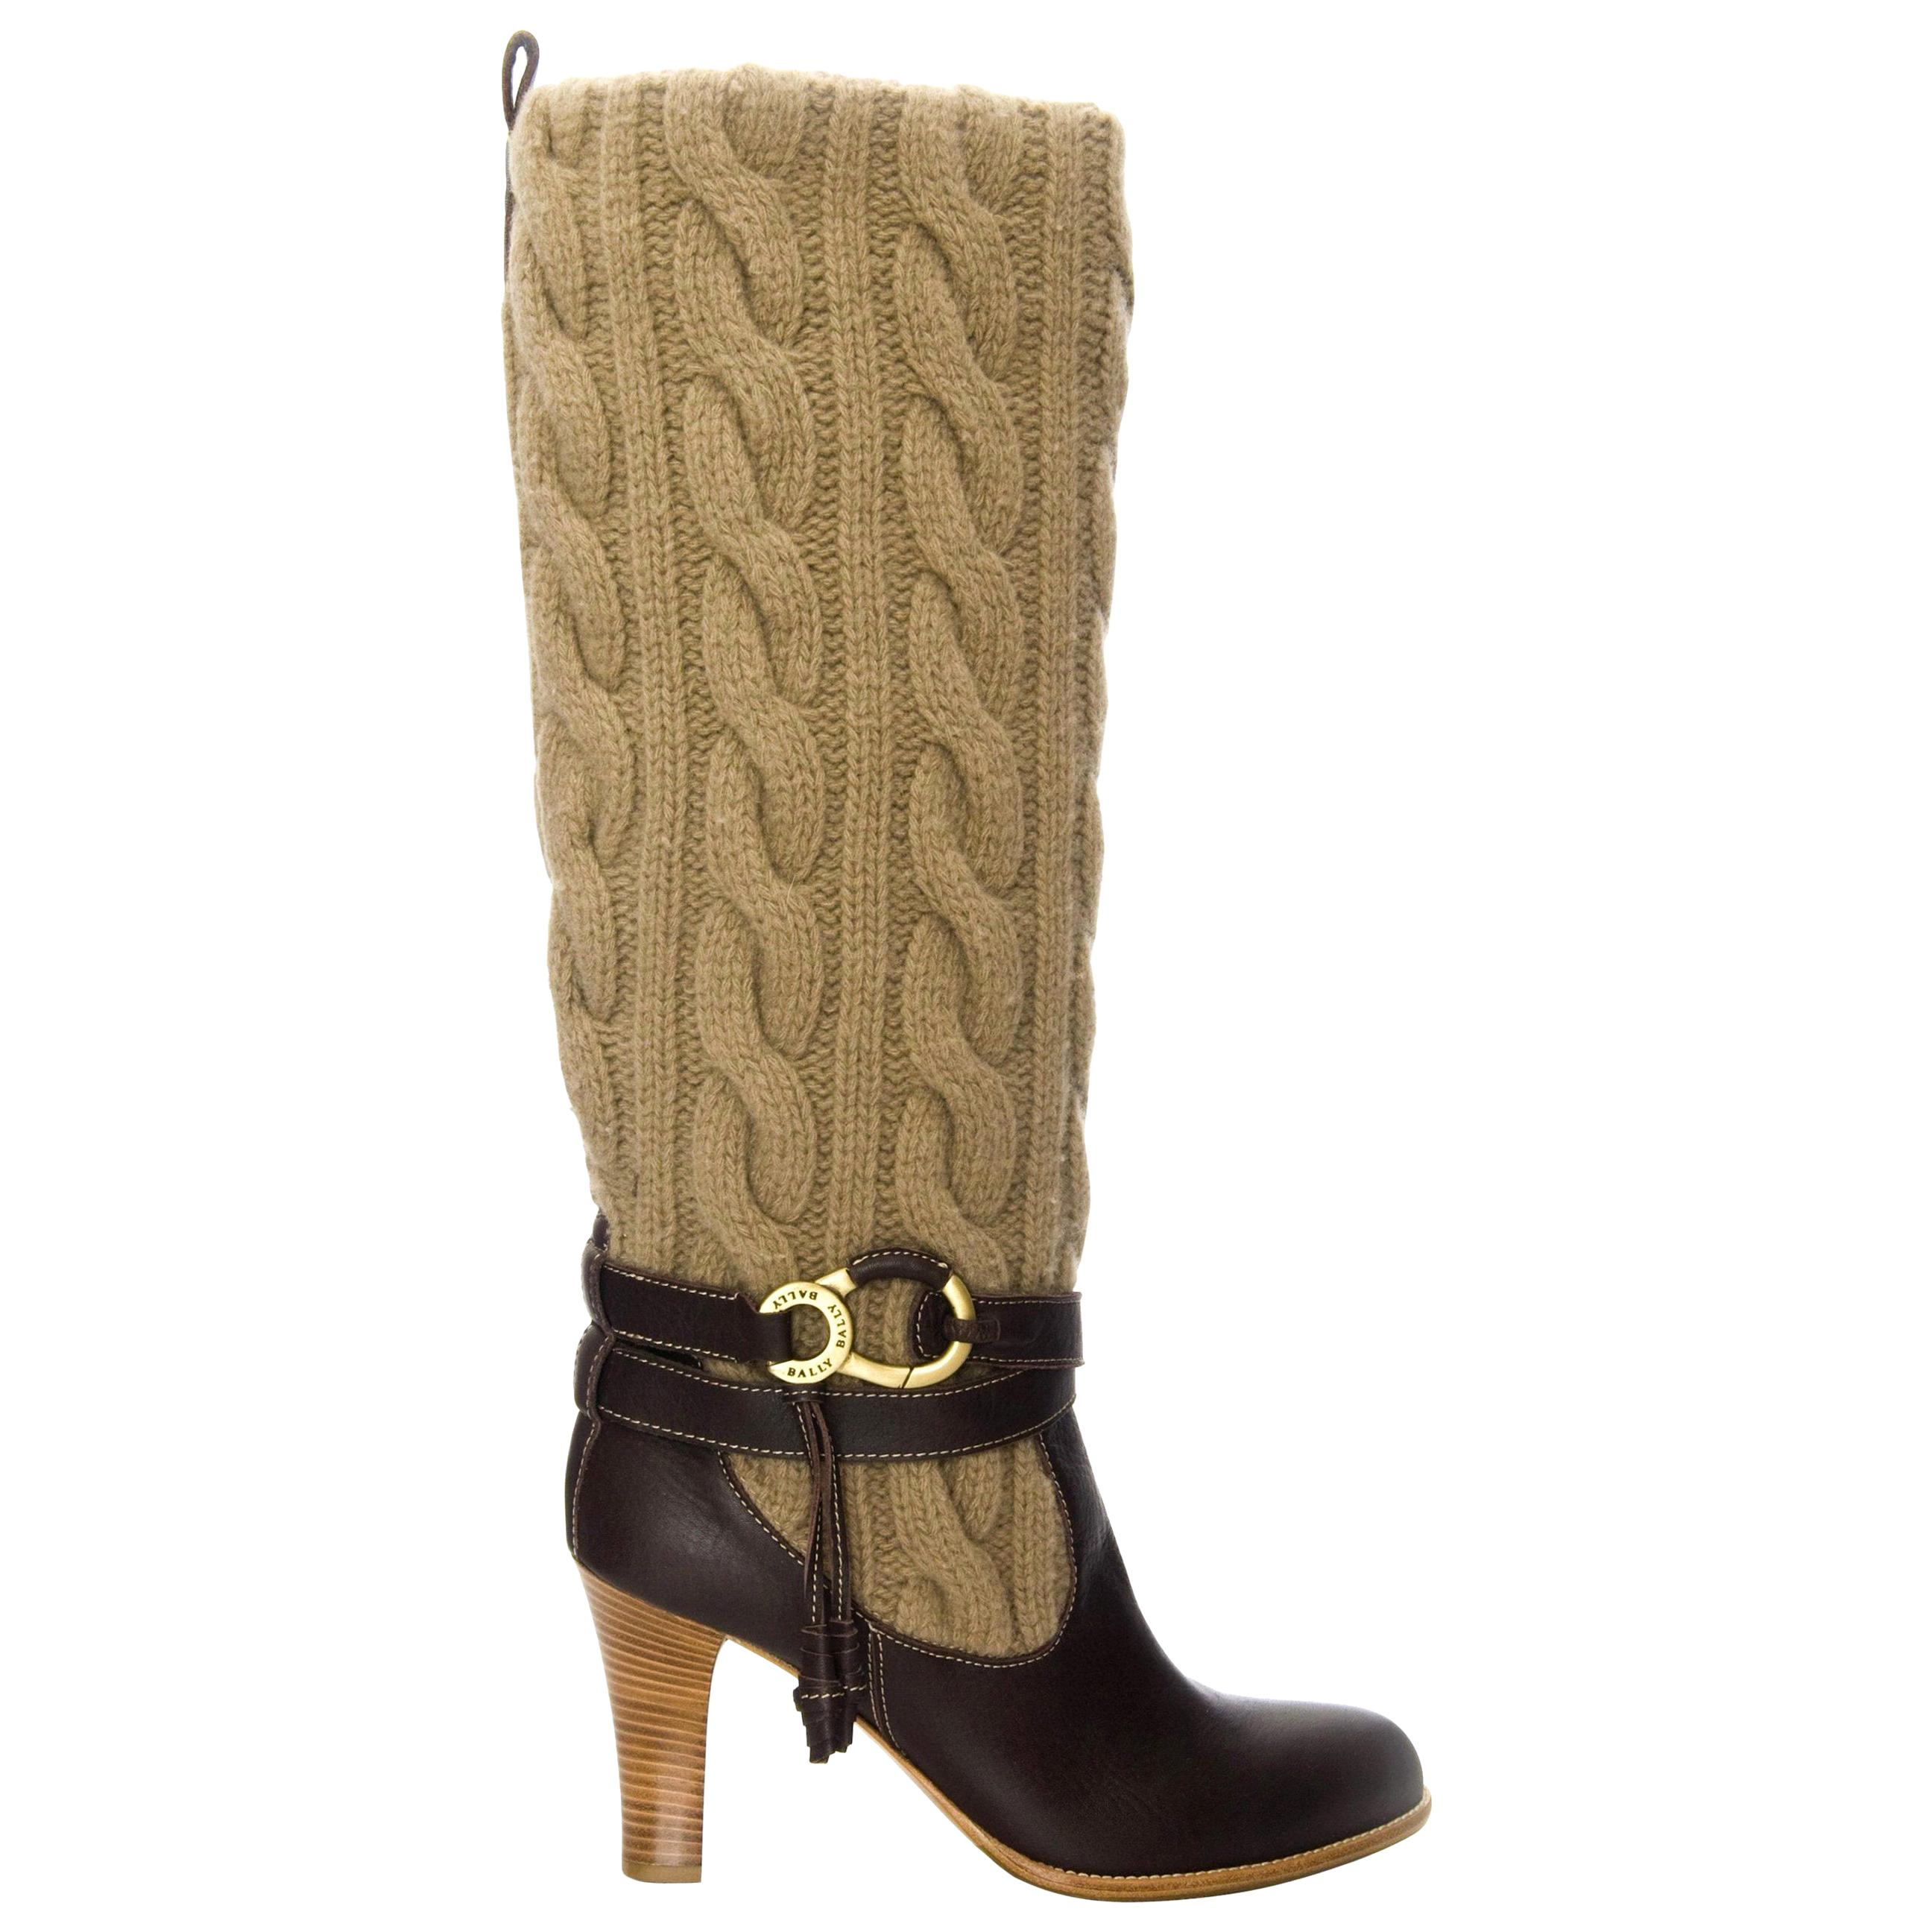 New Bally Knit and Leather Boots Sz 40.5